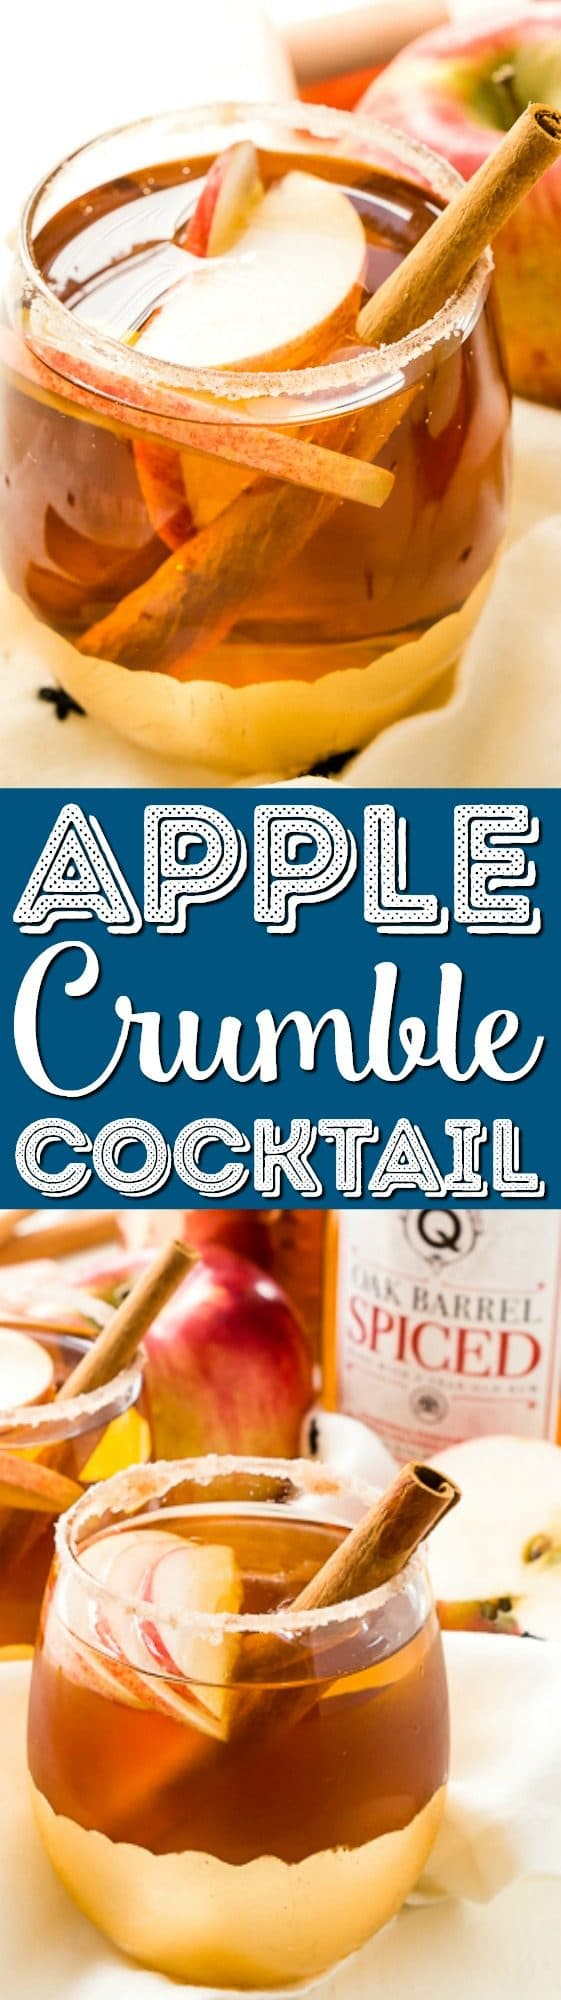 This Apple Crumble Cocktail is so simple to make and tastes like a crumbly apple pie in liquid form, a delicious fall alcoholic drink you can make in minutes!